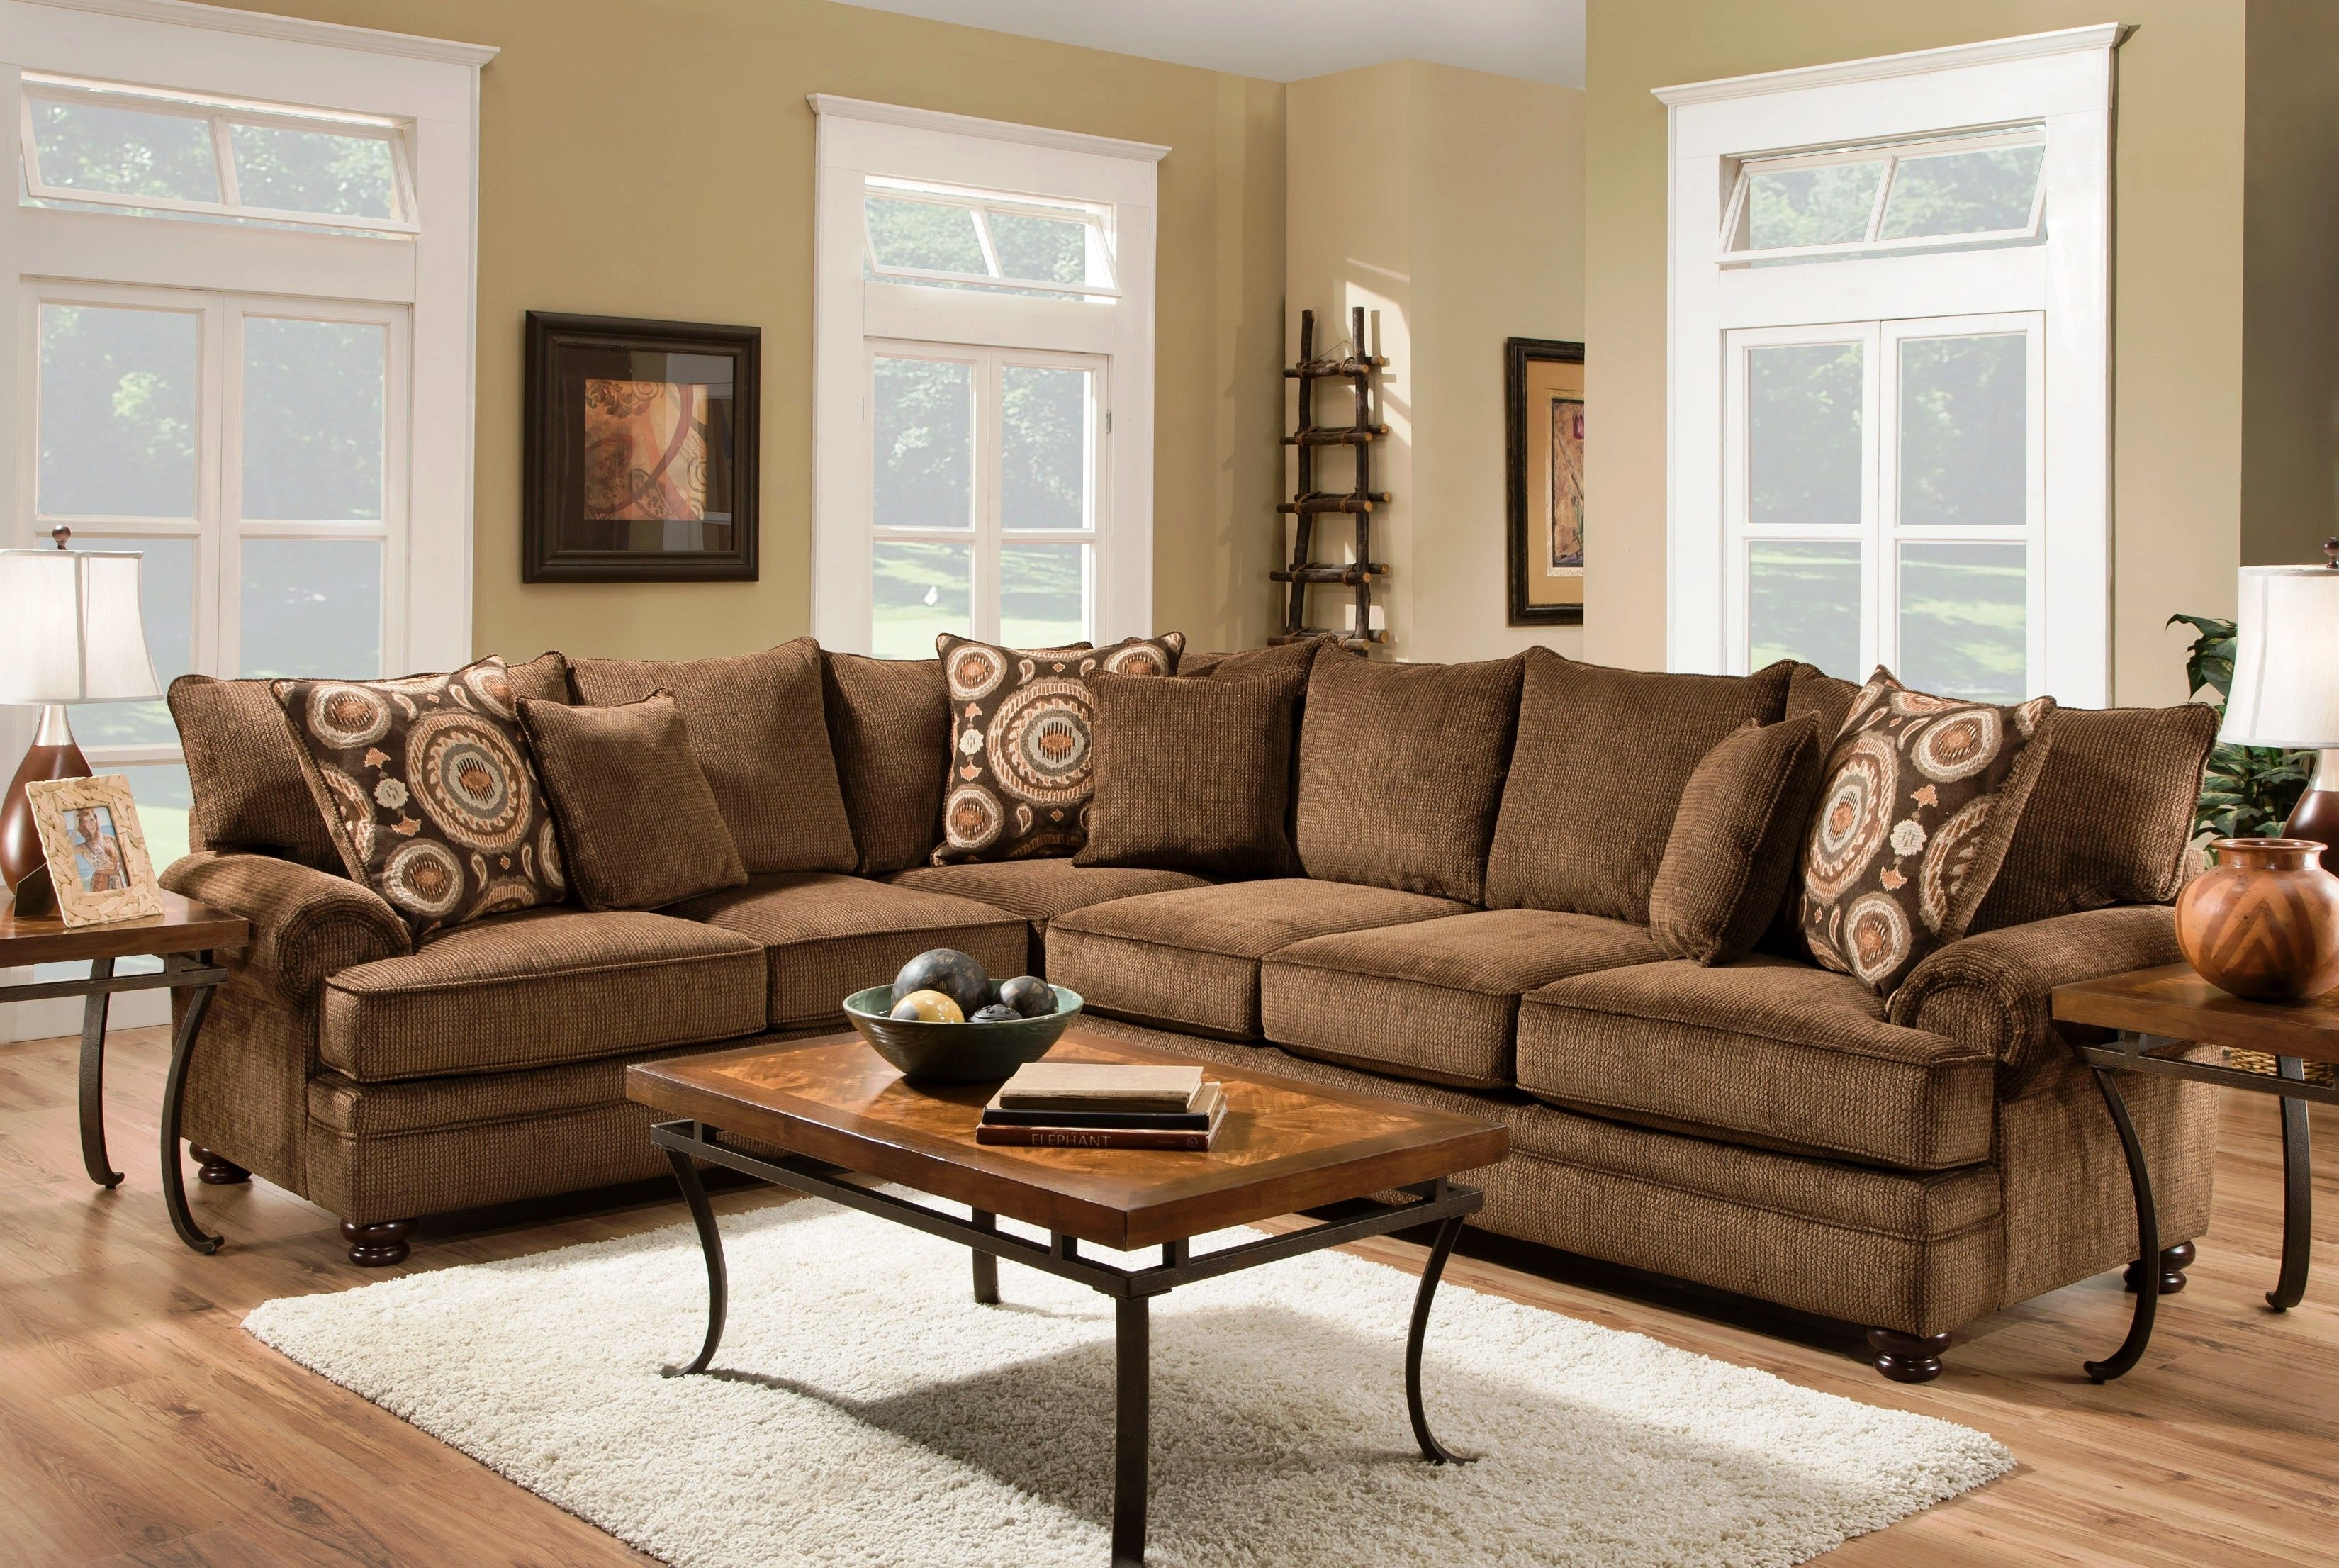 Beige Couch Pillows Luxury Ria Twill Chocolate 2 Piece Sectional within Mesa Foam 2 Piece Sectionals (Image 3 of 30)